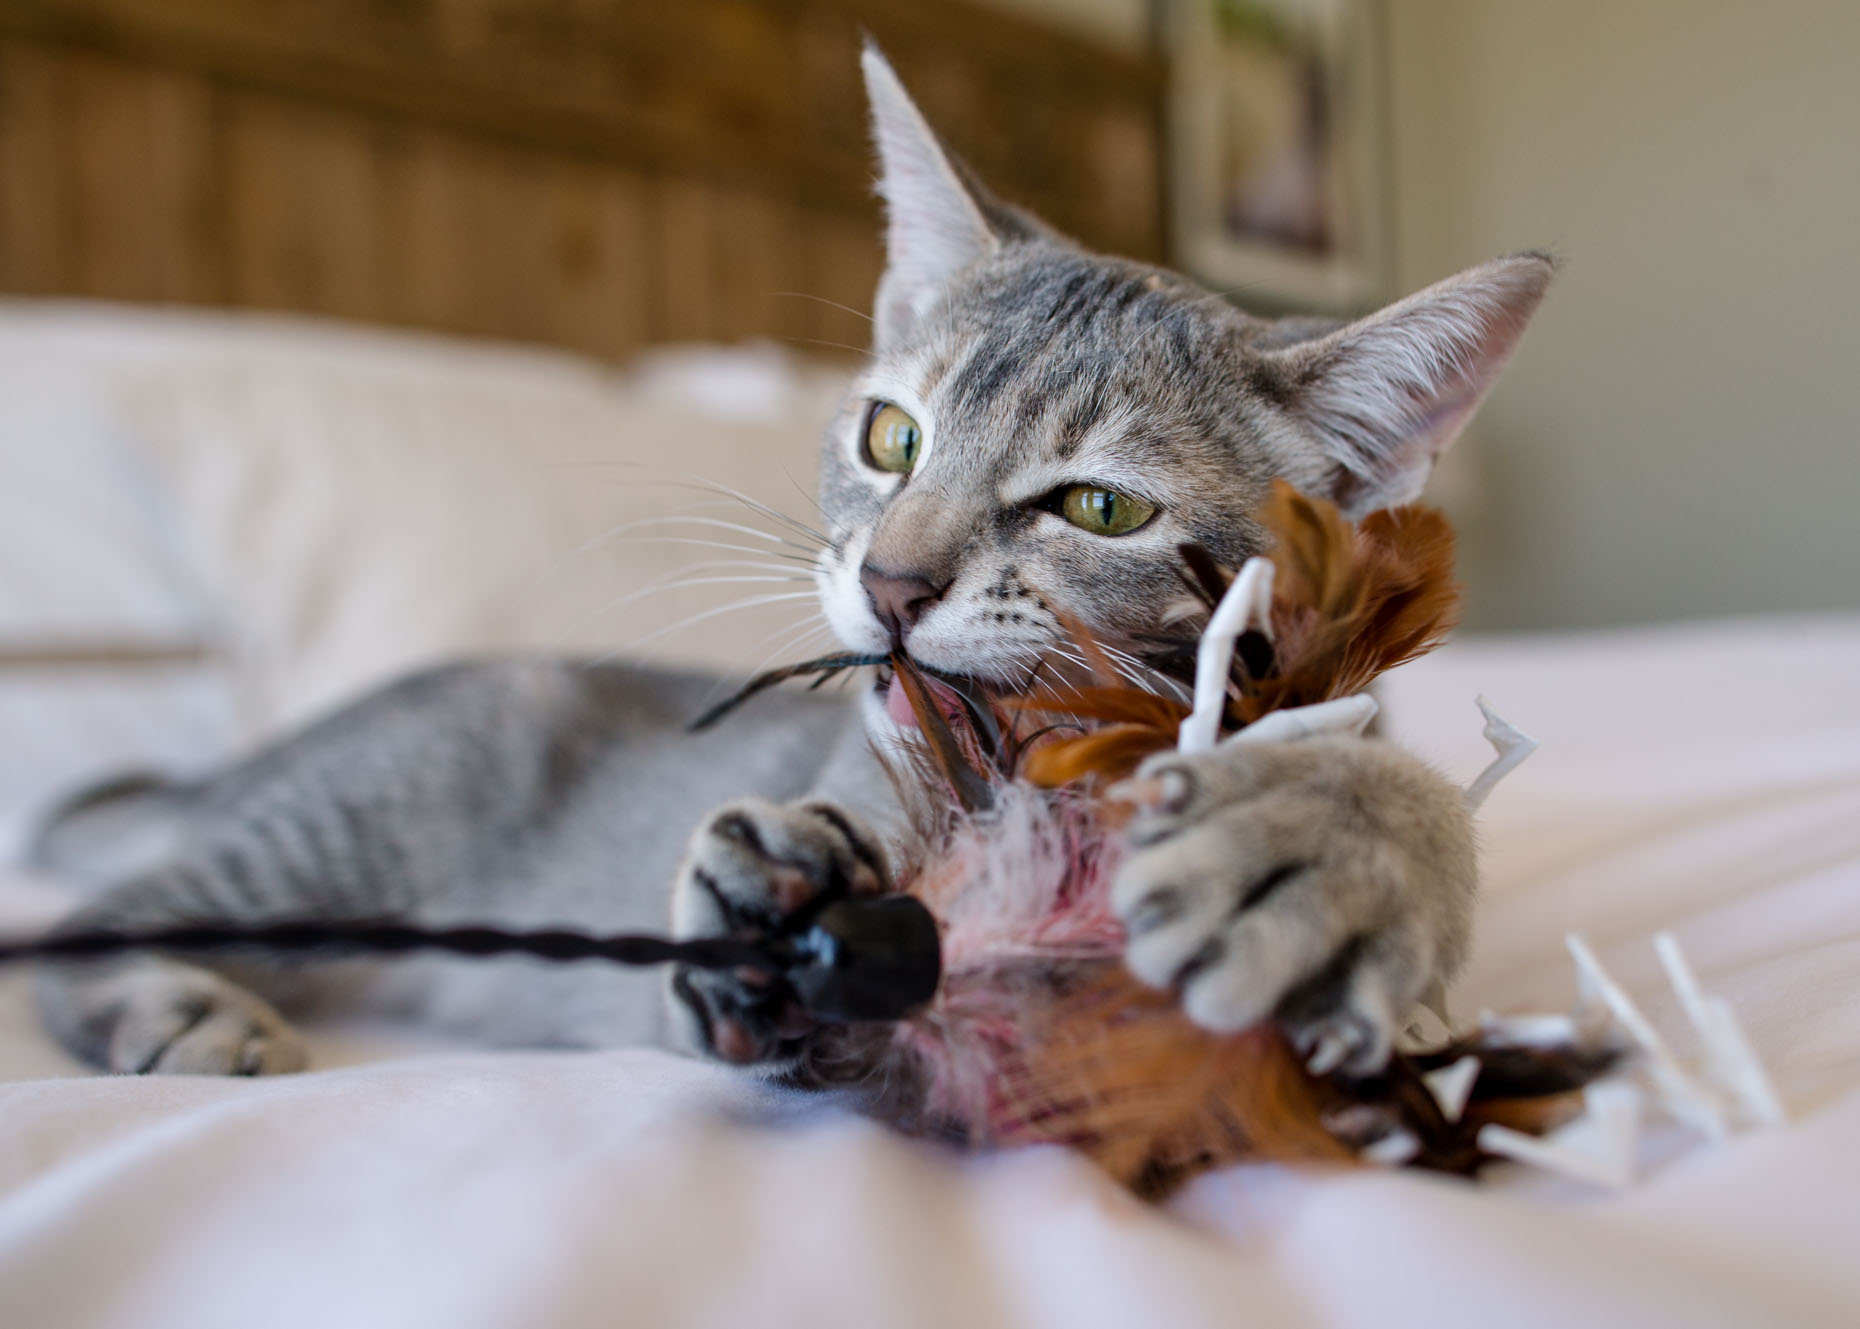 Cat Photography | Kitten Playing with Toy by Mark Rogers